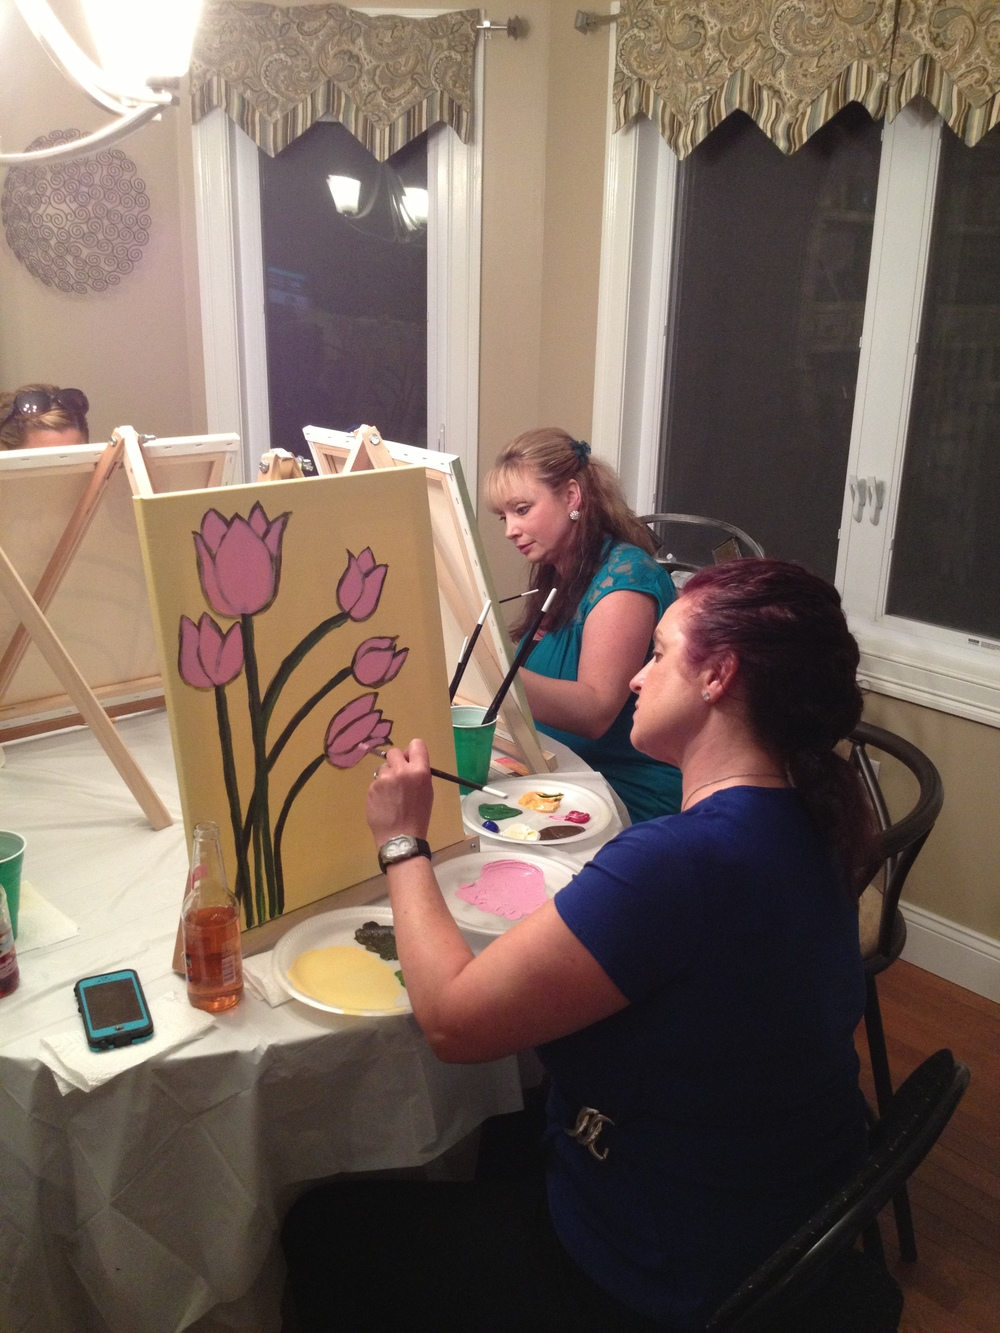 Deb and Kym concentrating Kym's painting was hanging on her wall before everyone left!!